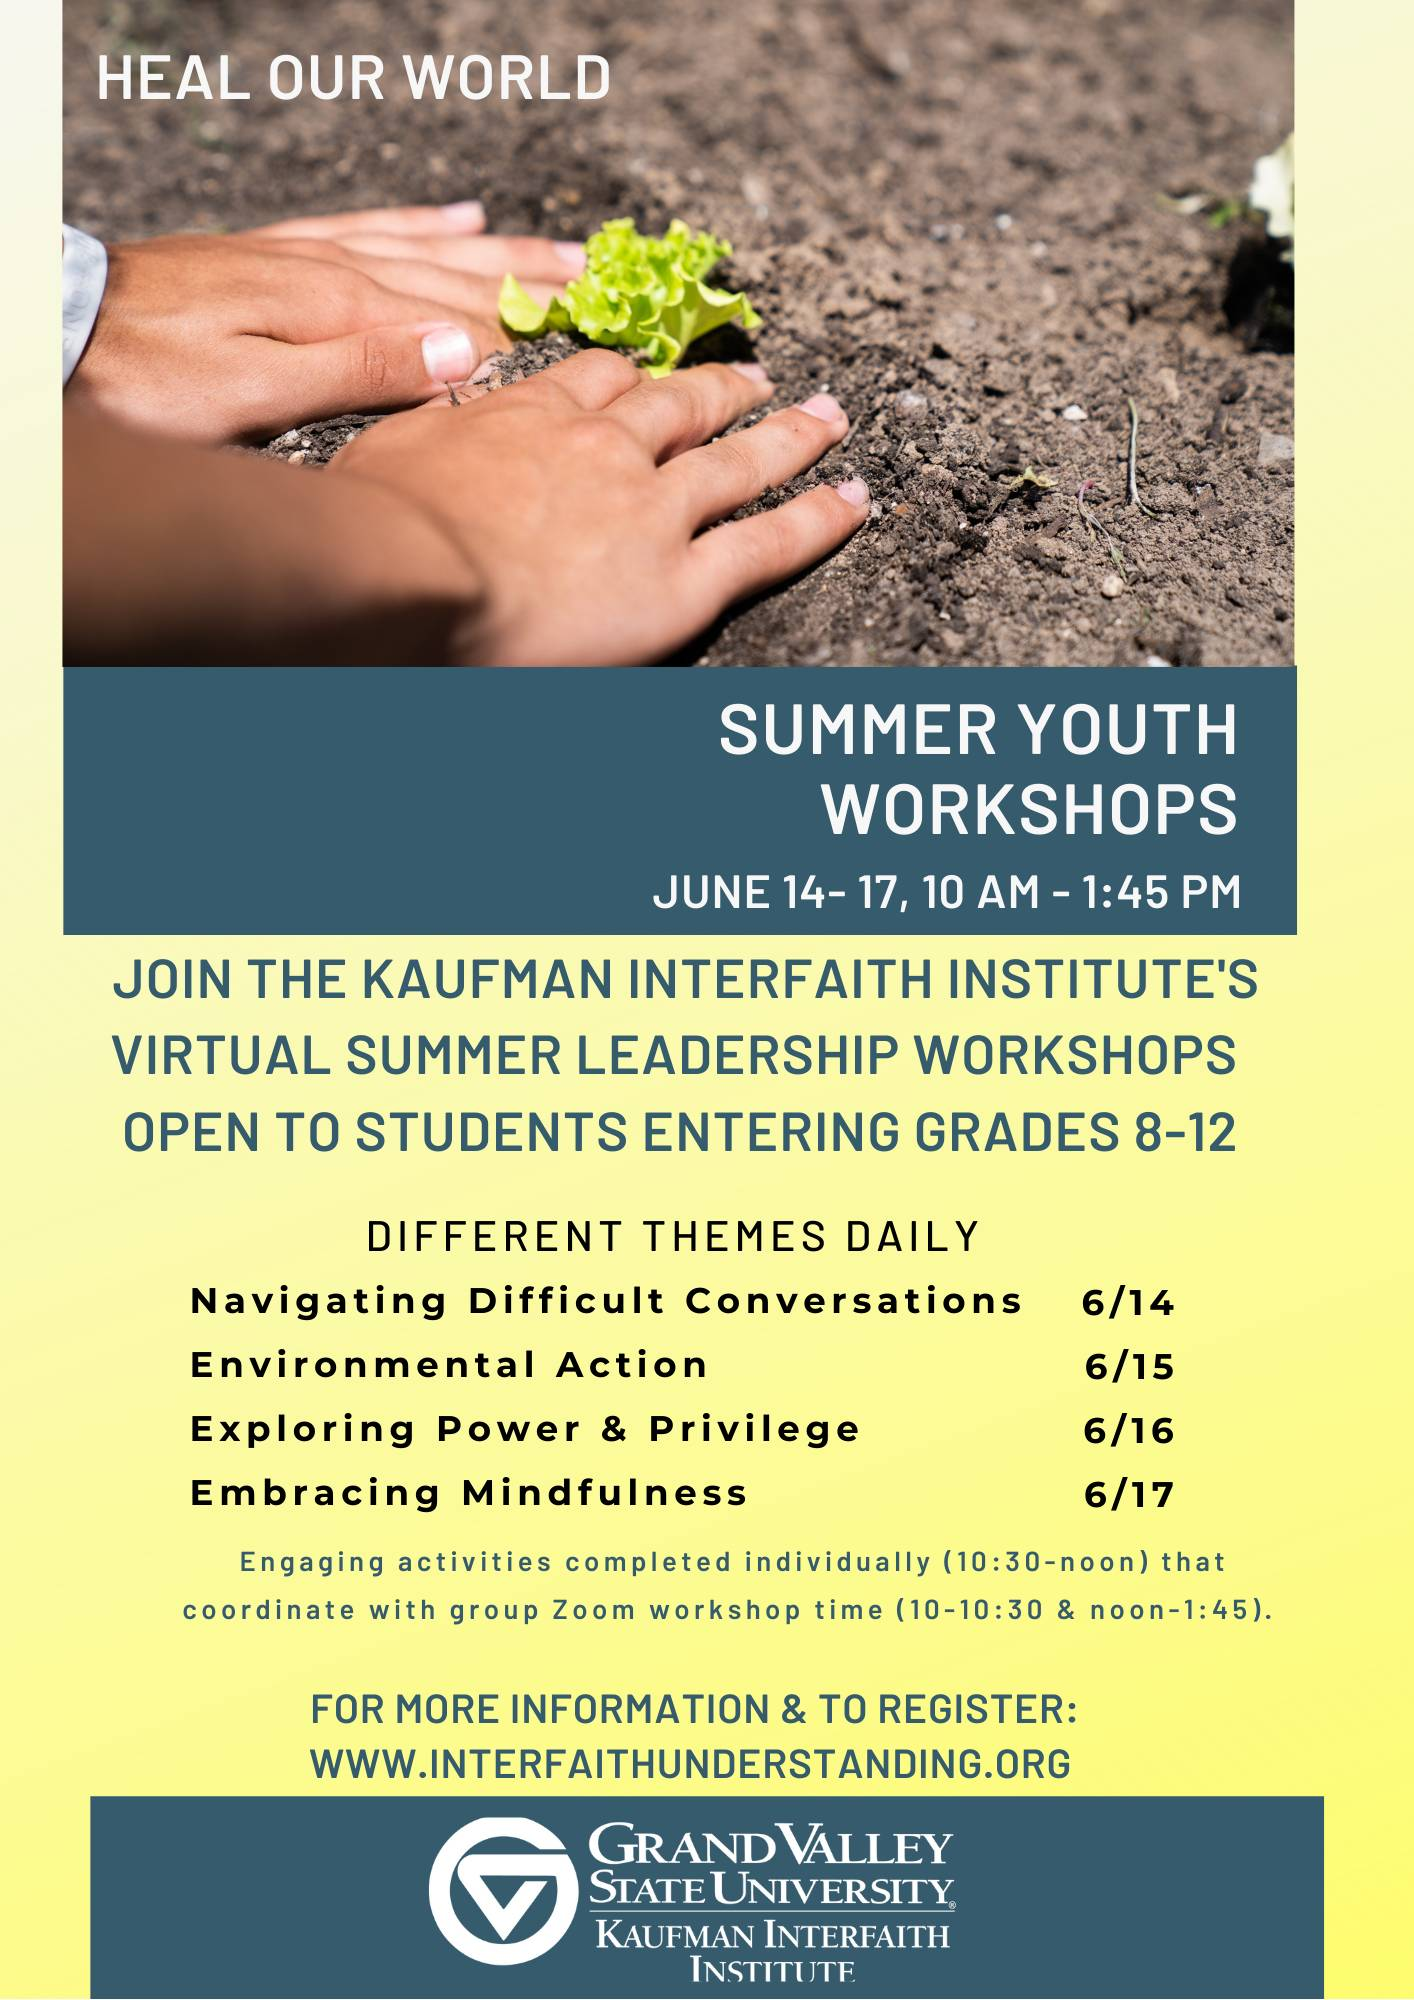 Youth Interfaith Leadership Workshops - click for info